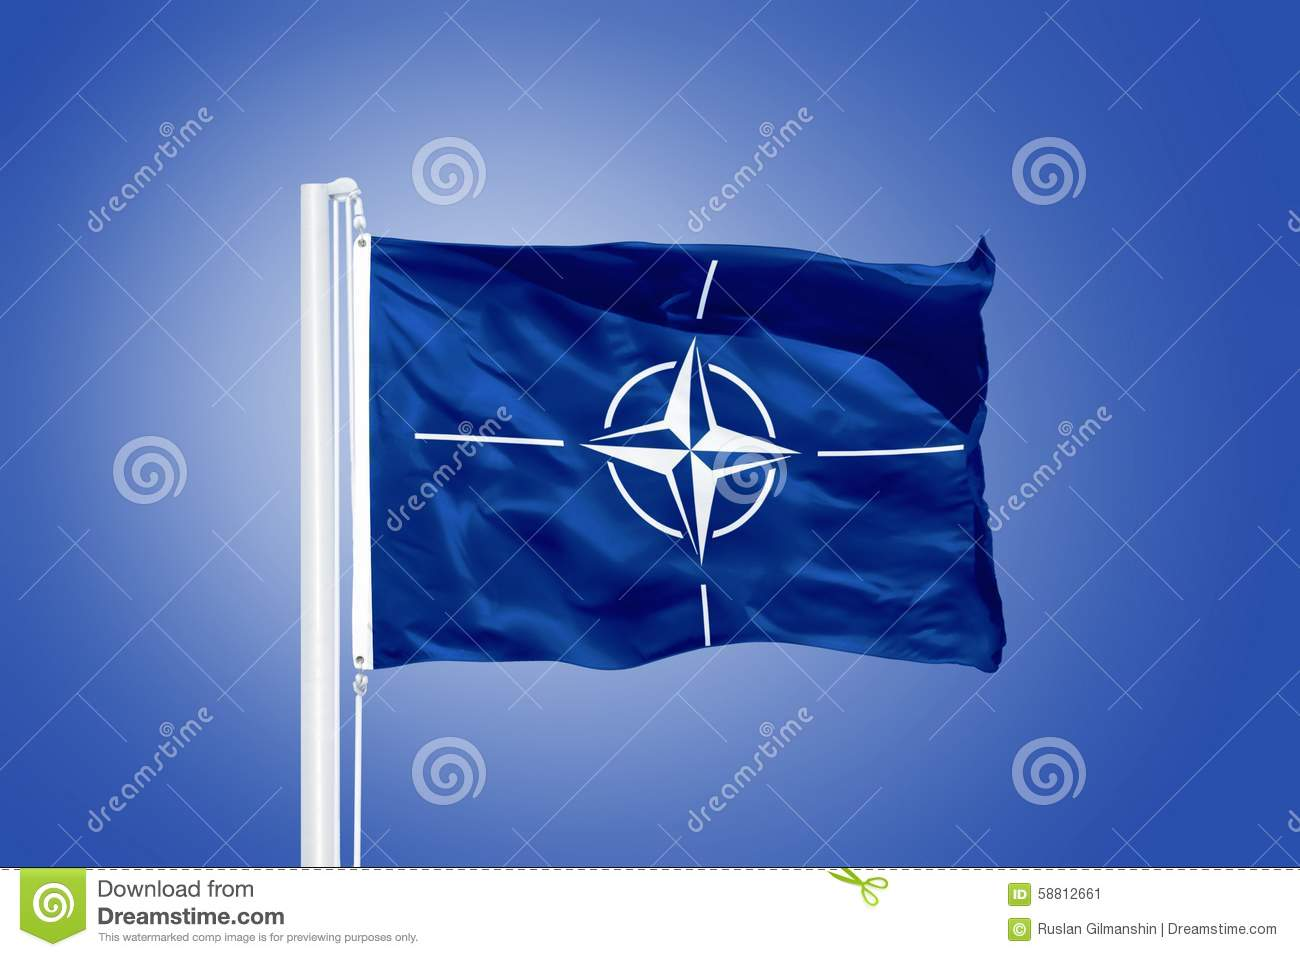 a history of the north atlantic treaty organization Following world war ii, the organization known as the north atlantic treaty organization was formed because anti-communist.